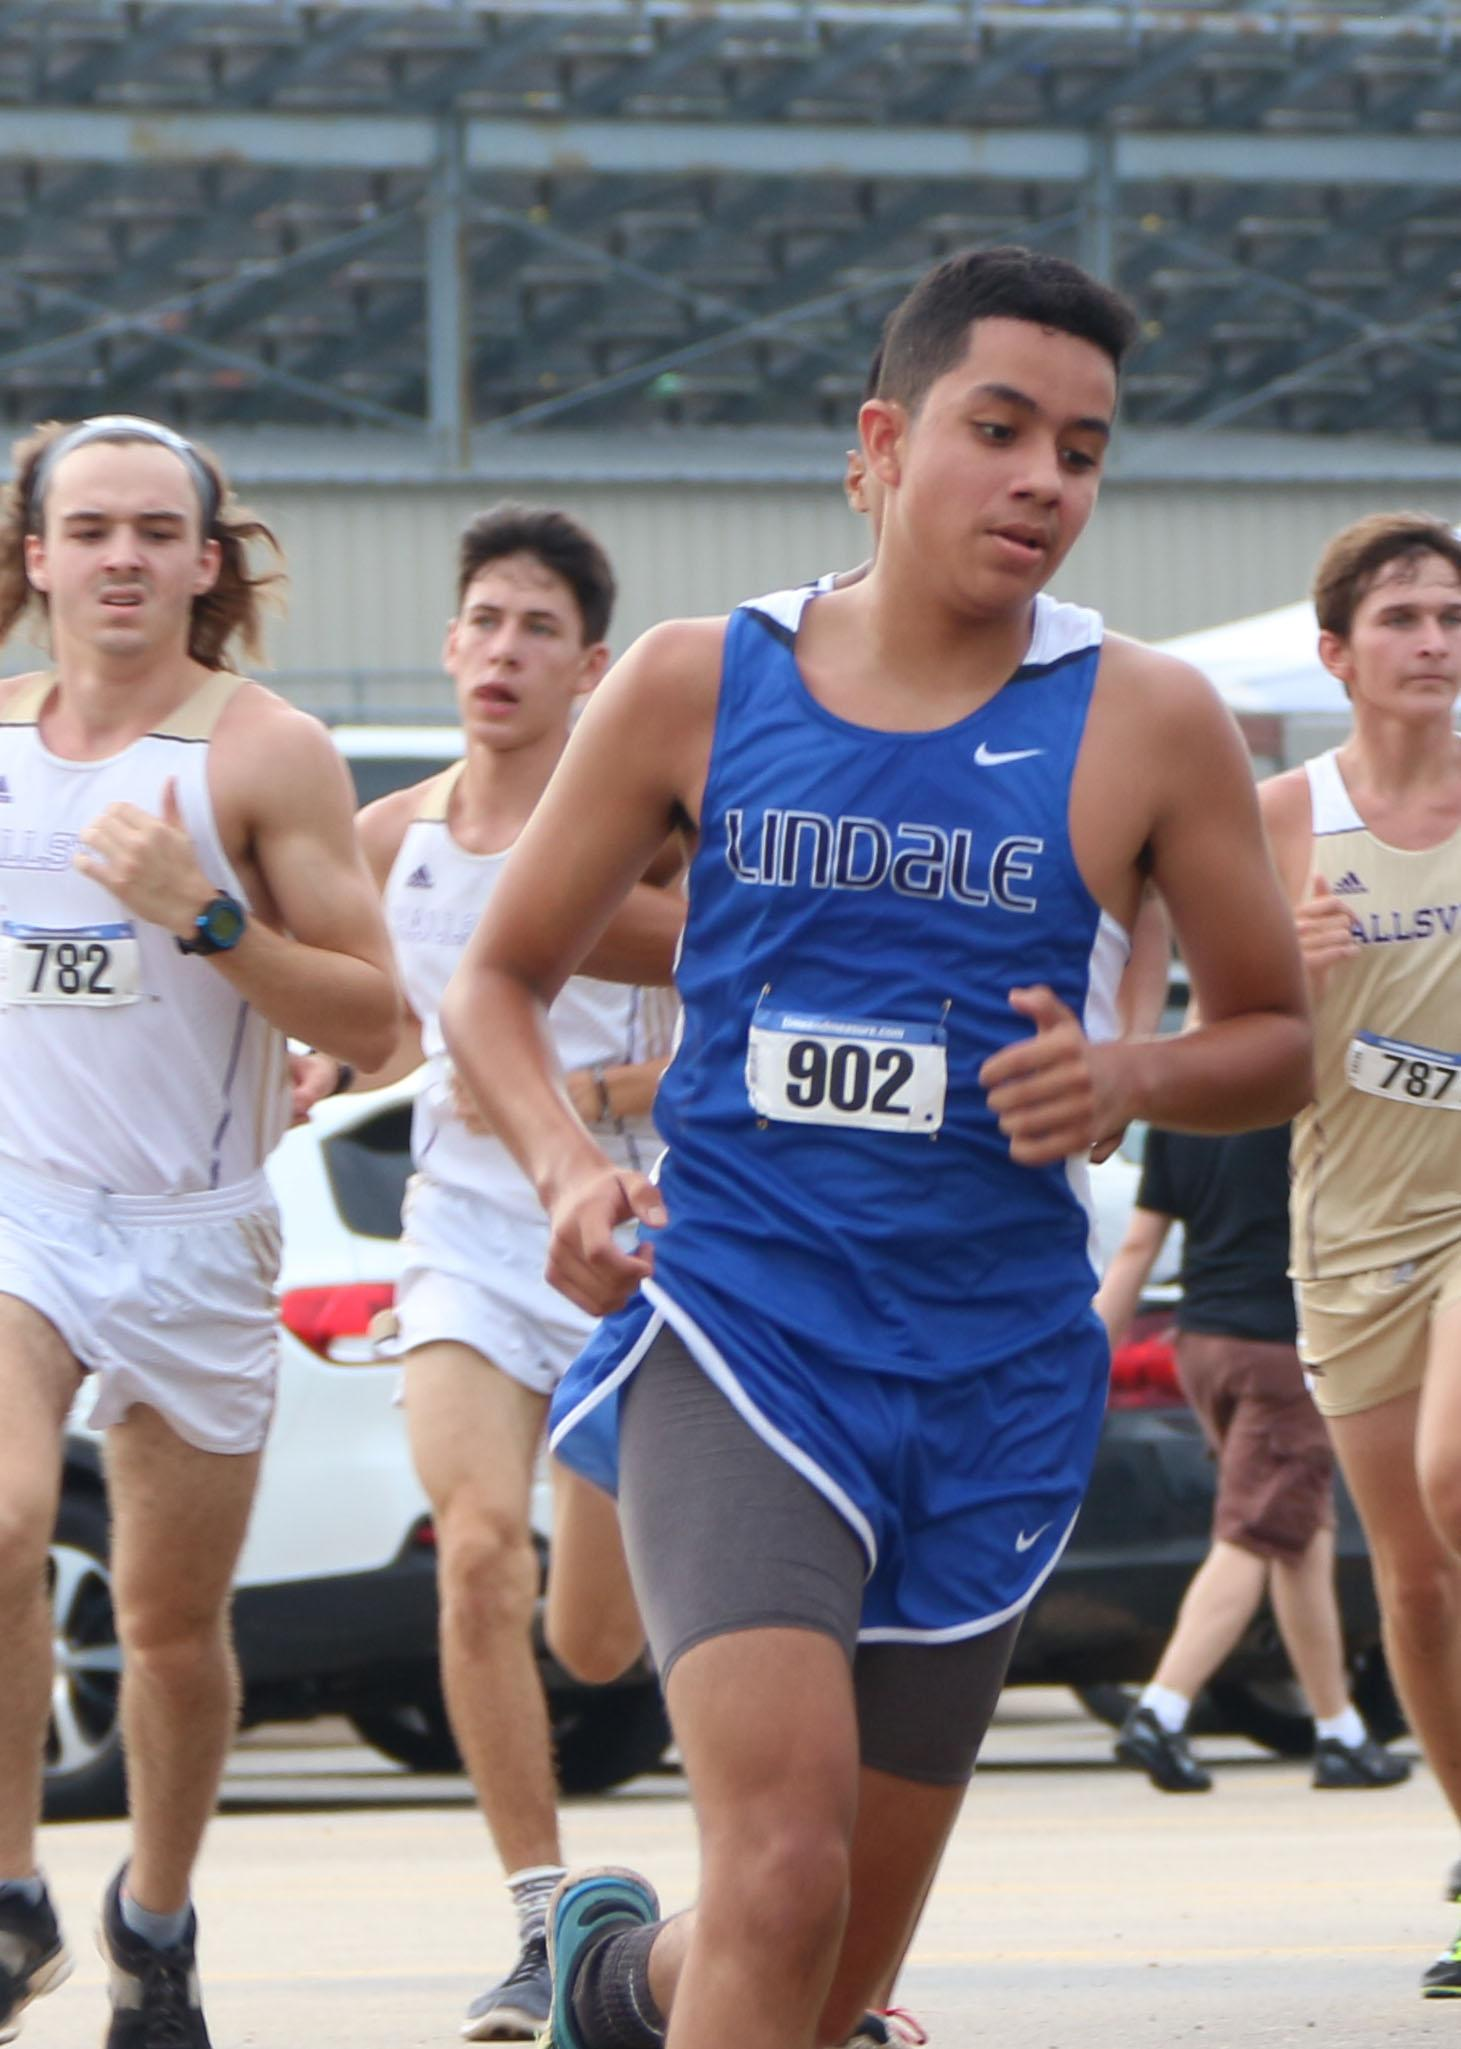 Senior Alan Ramirez comes around the corner during a cross country meet.